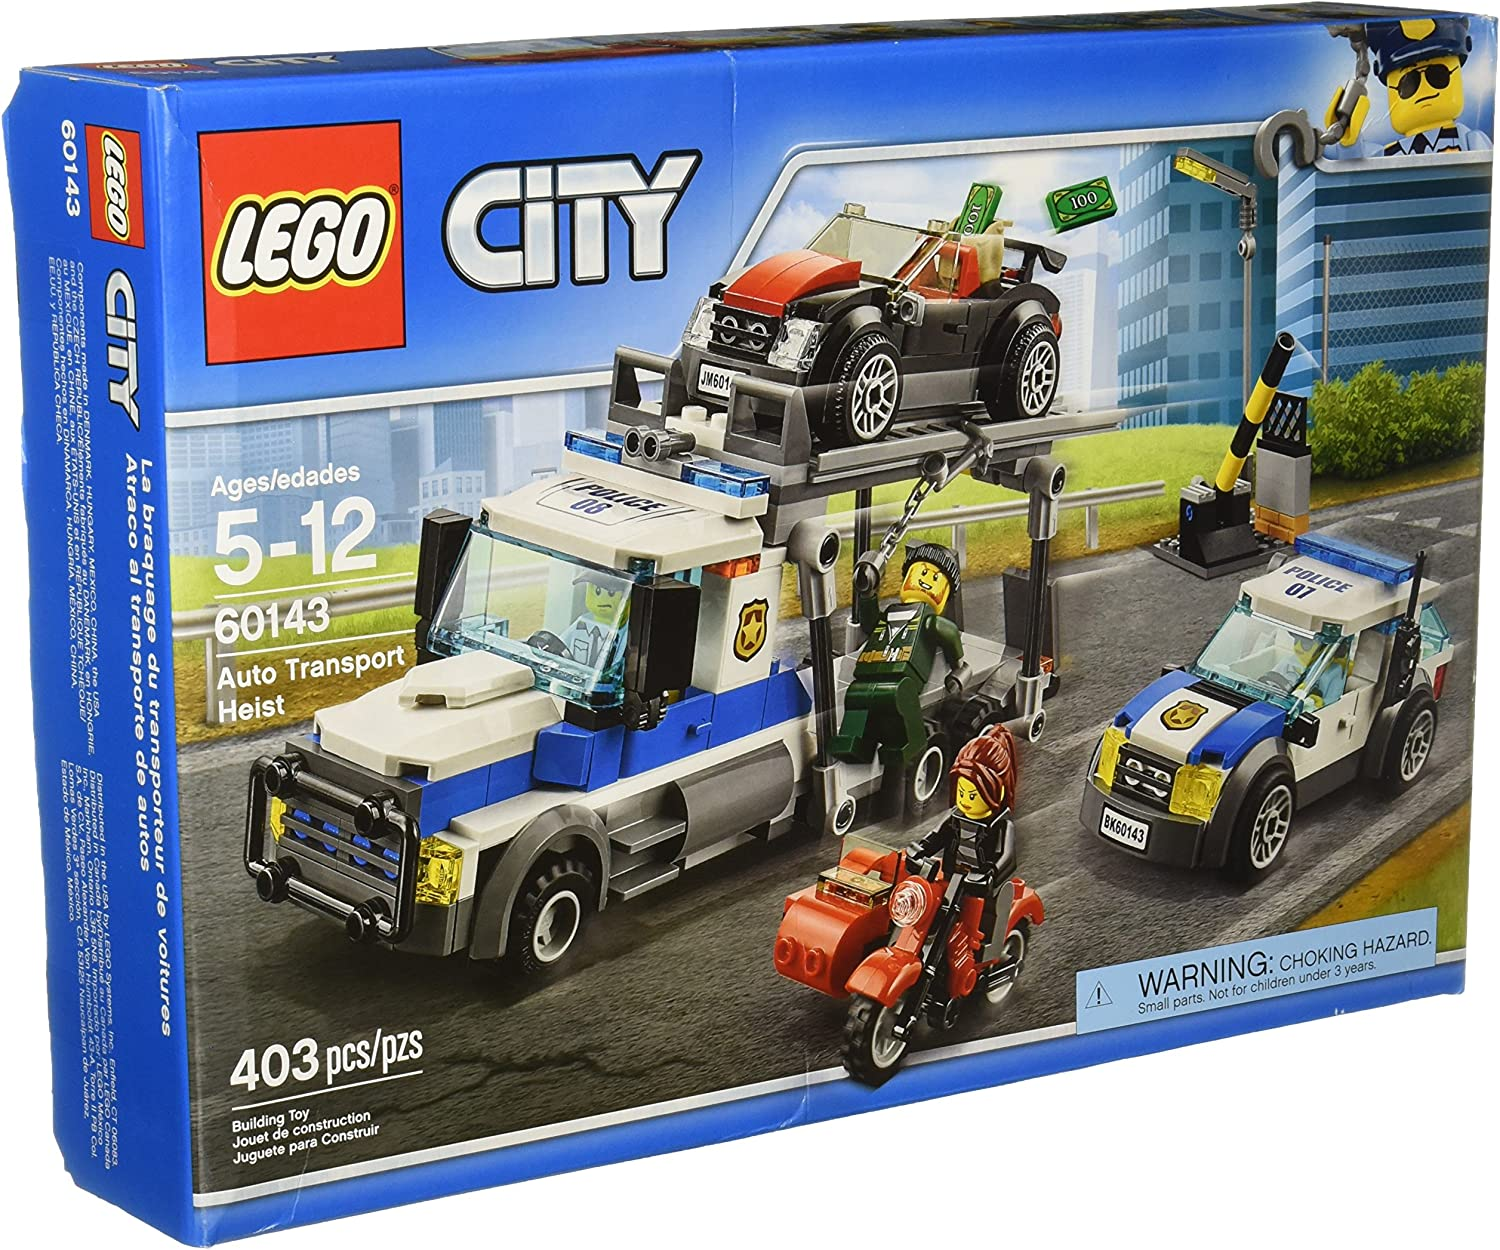 LEGO City Police Auto Transport Heist (60143)